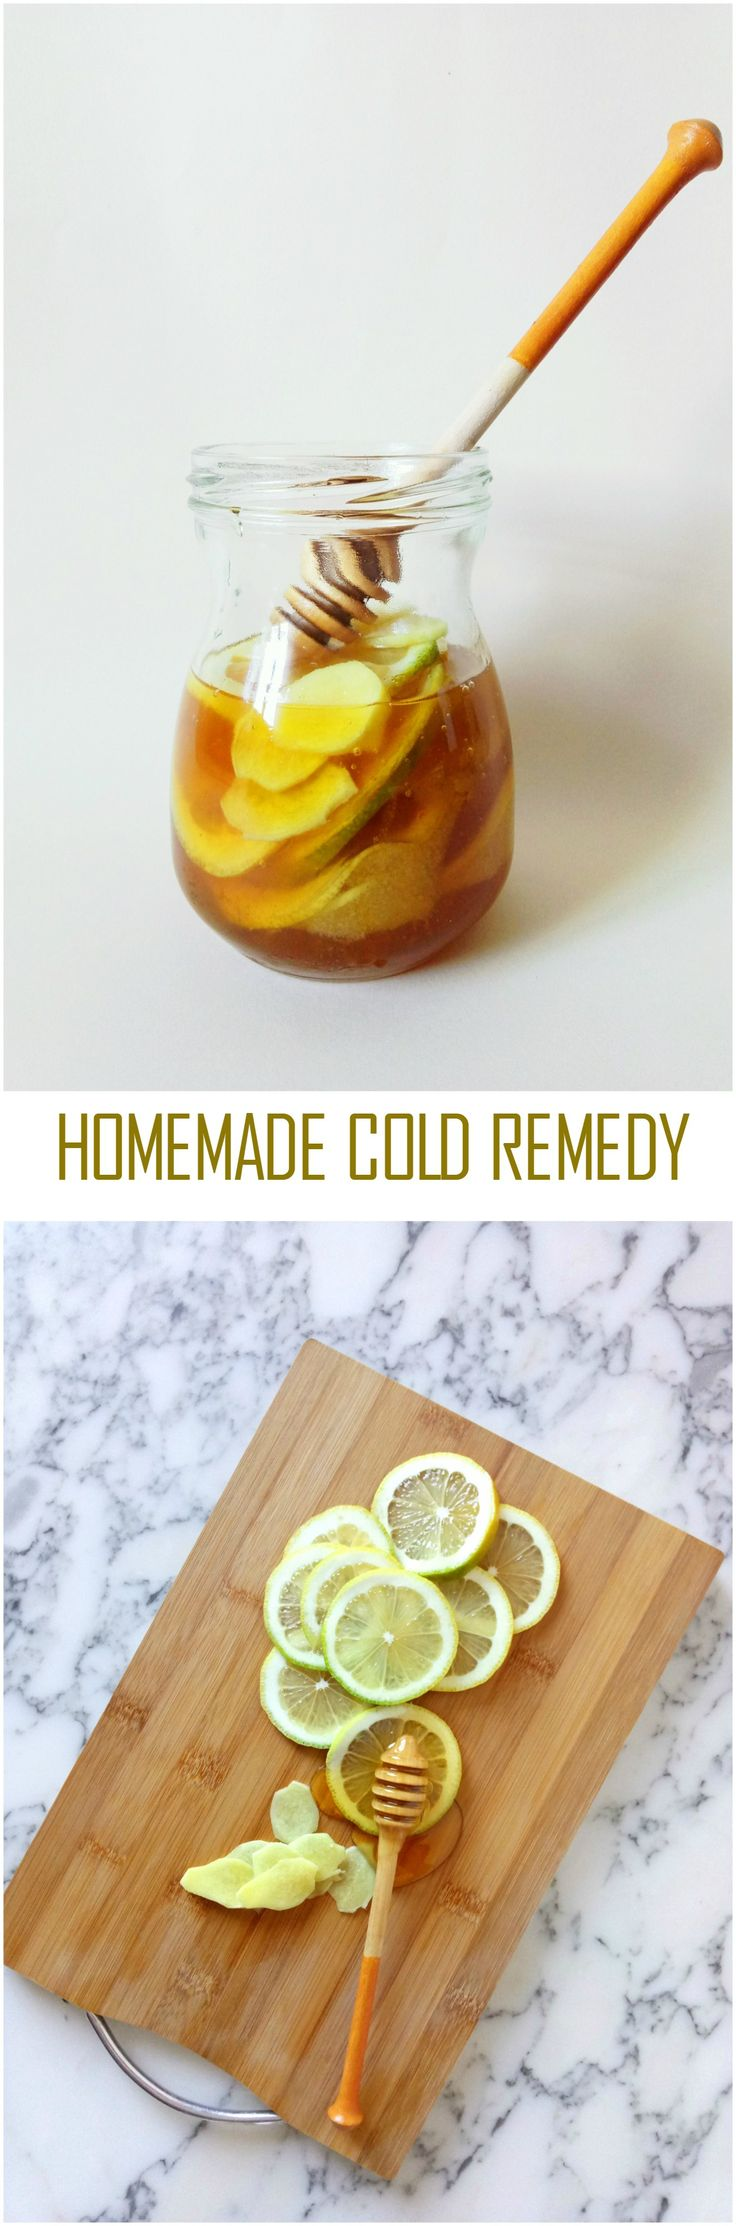 Best Homemade Remedy for Cold and Cough #fluremedy #coldremedy #homemadecoldremedy